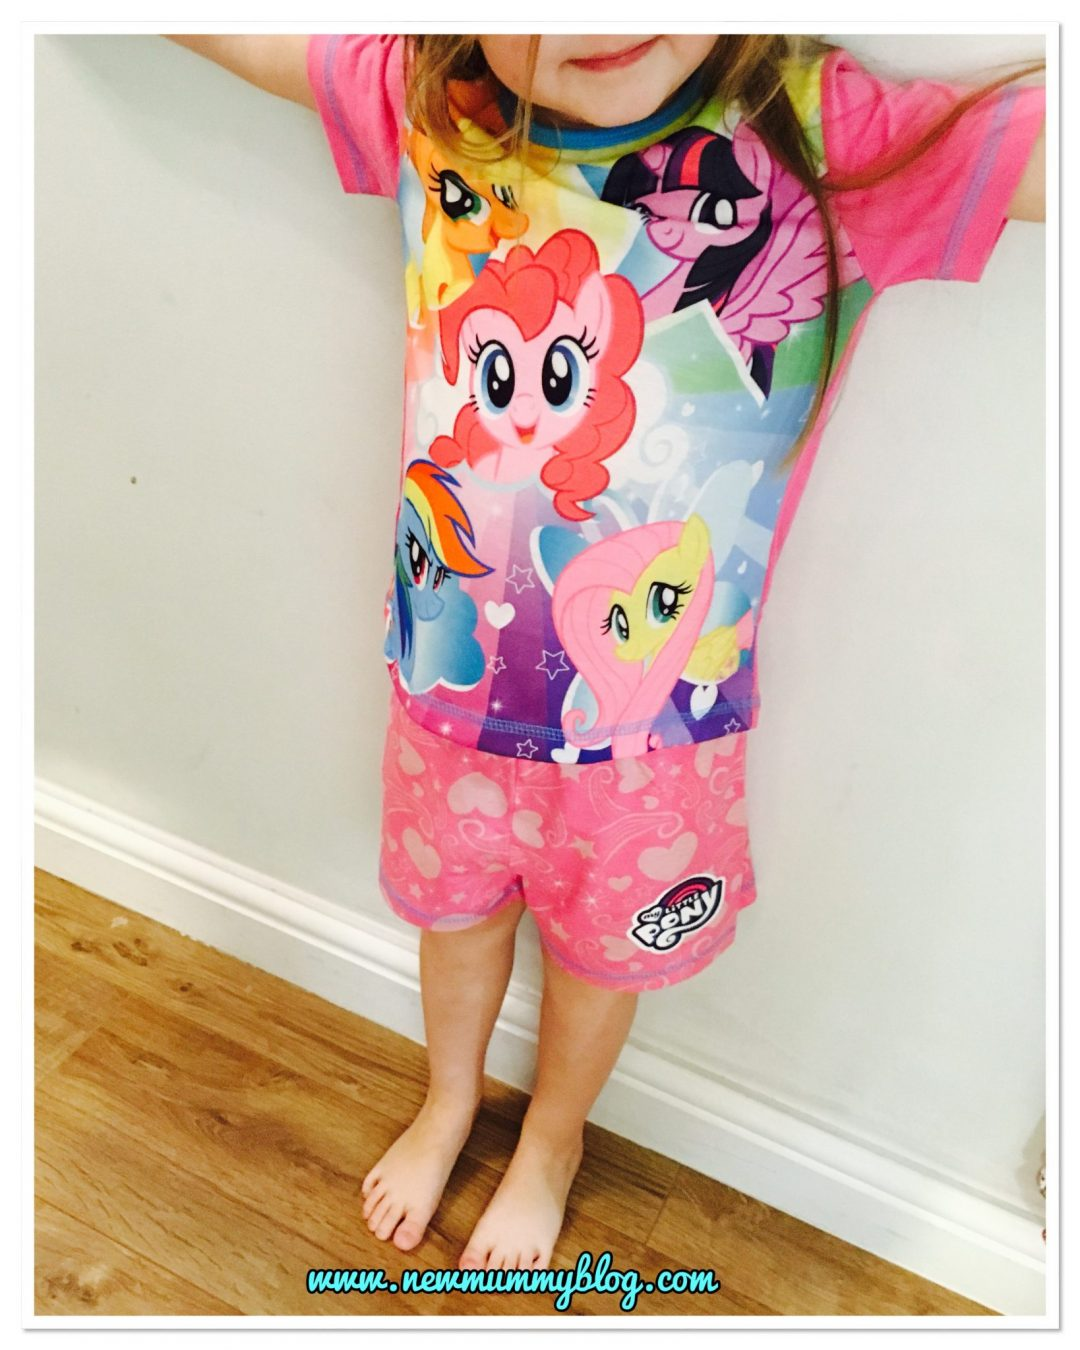 My Little Pony pyjamas from Pyjama Factory - perfect present for Christmas for a 4 year old! - new Mummy Blog Review